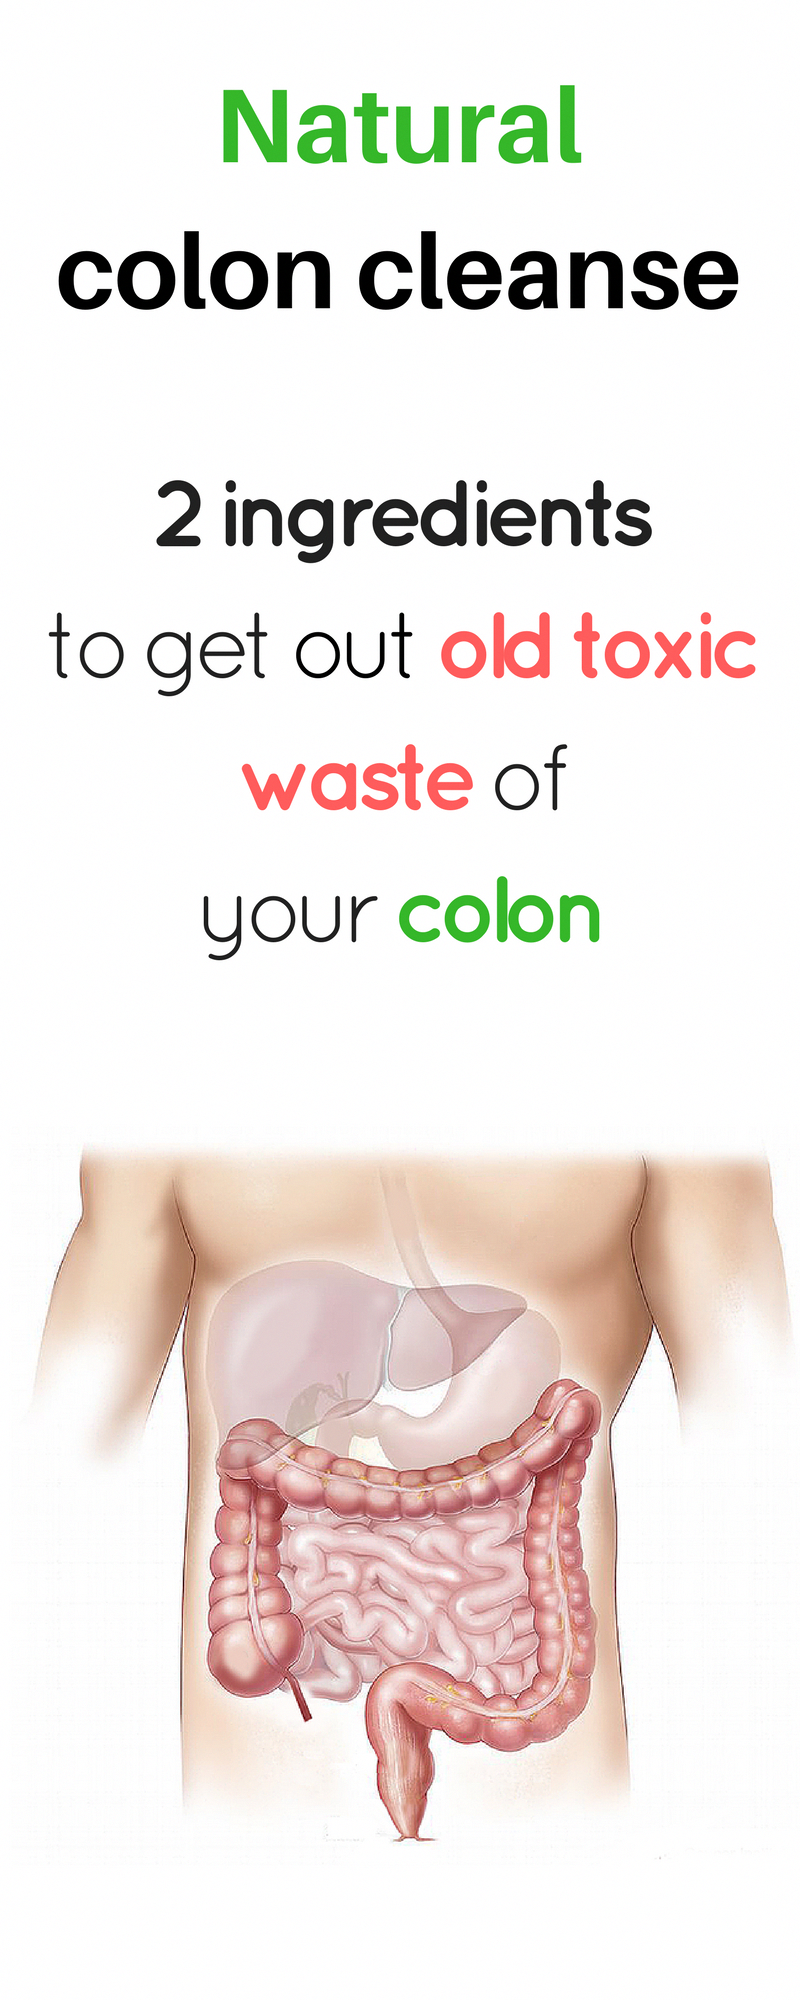 homemade cleanse that will clean your colon of toxic waste. colon